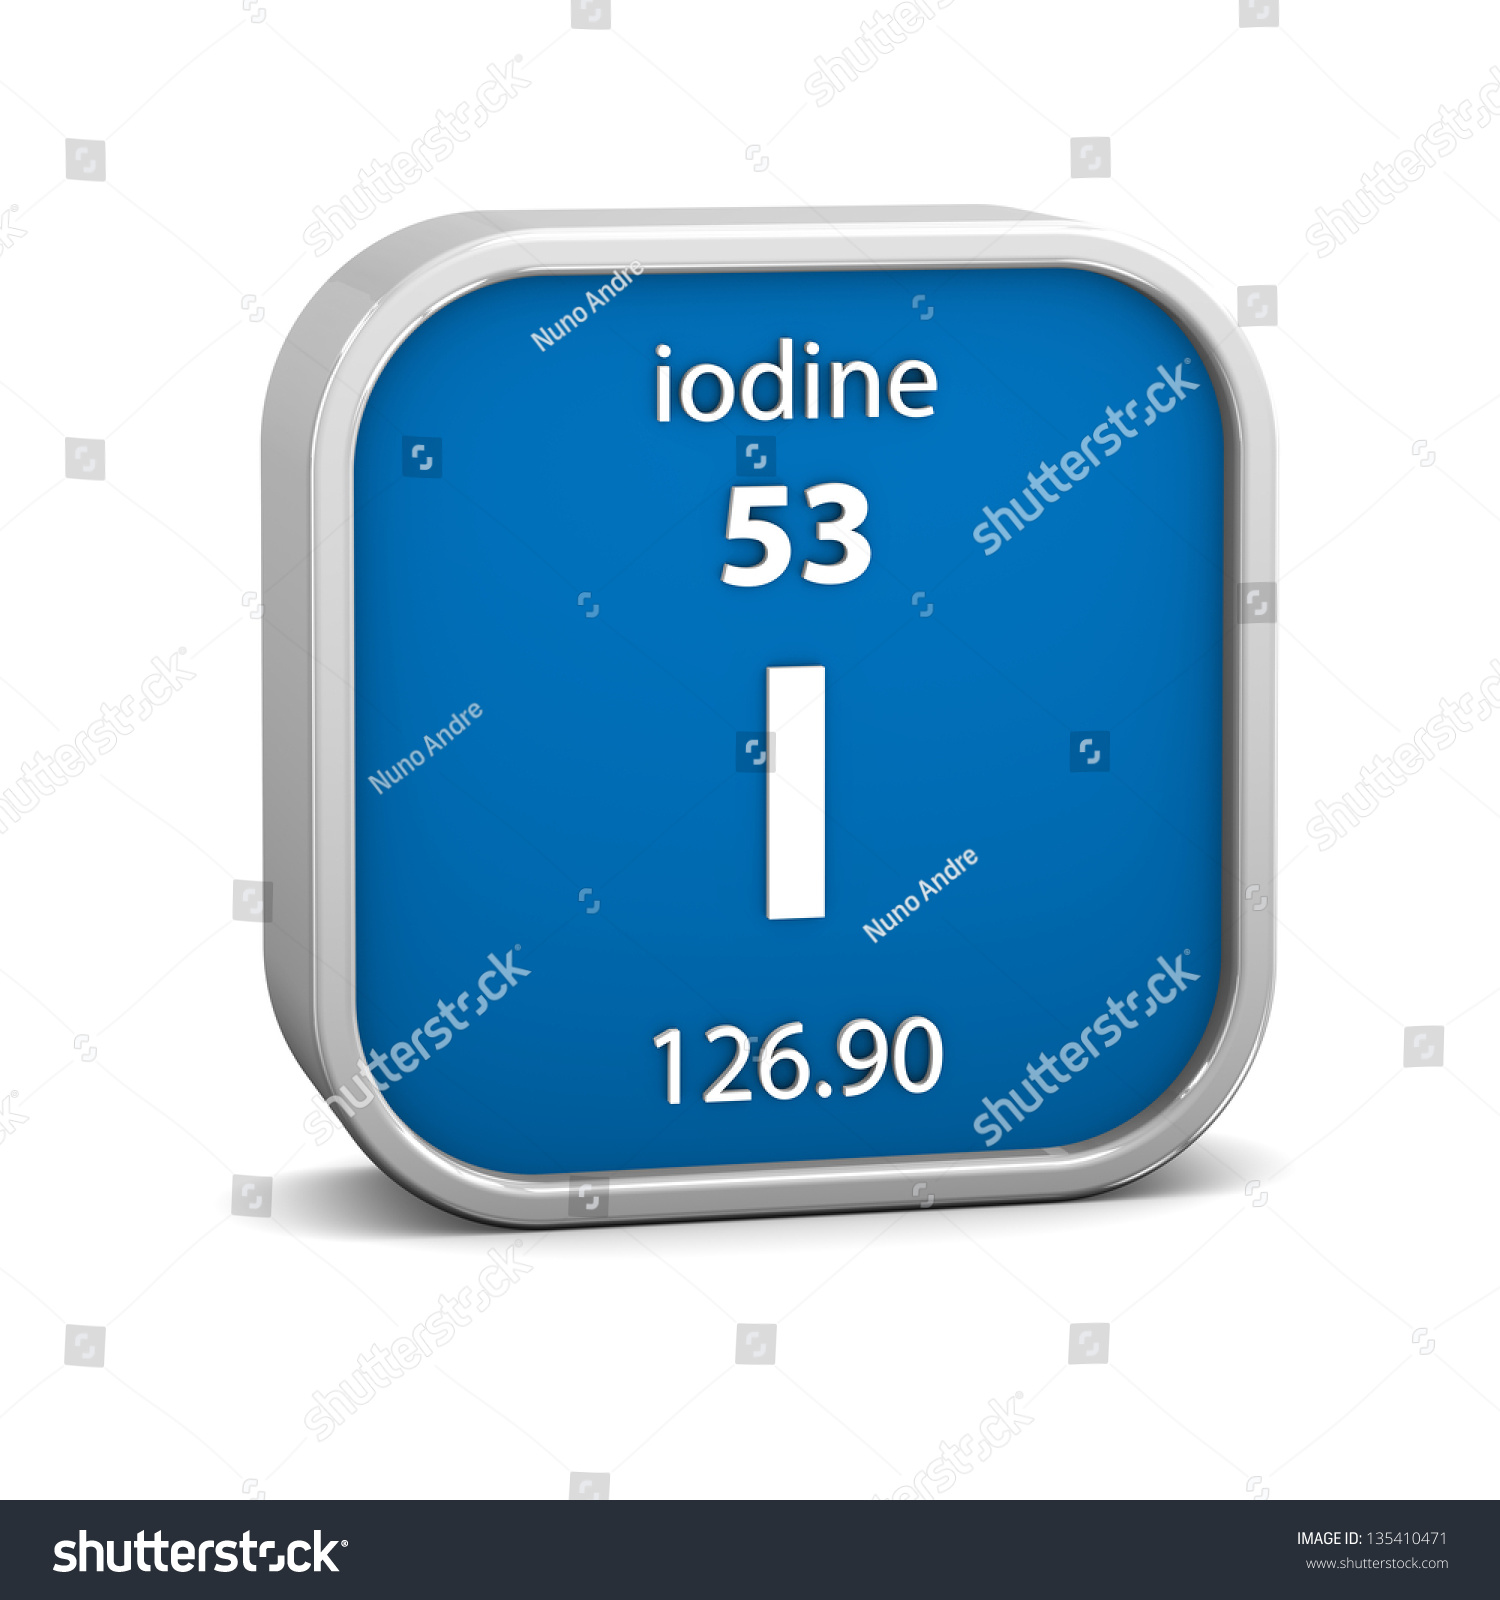 Iodine material on periodic table part stock illustration iodine material on the periodic table part of a series gamestrikefo Choice Image